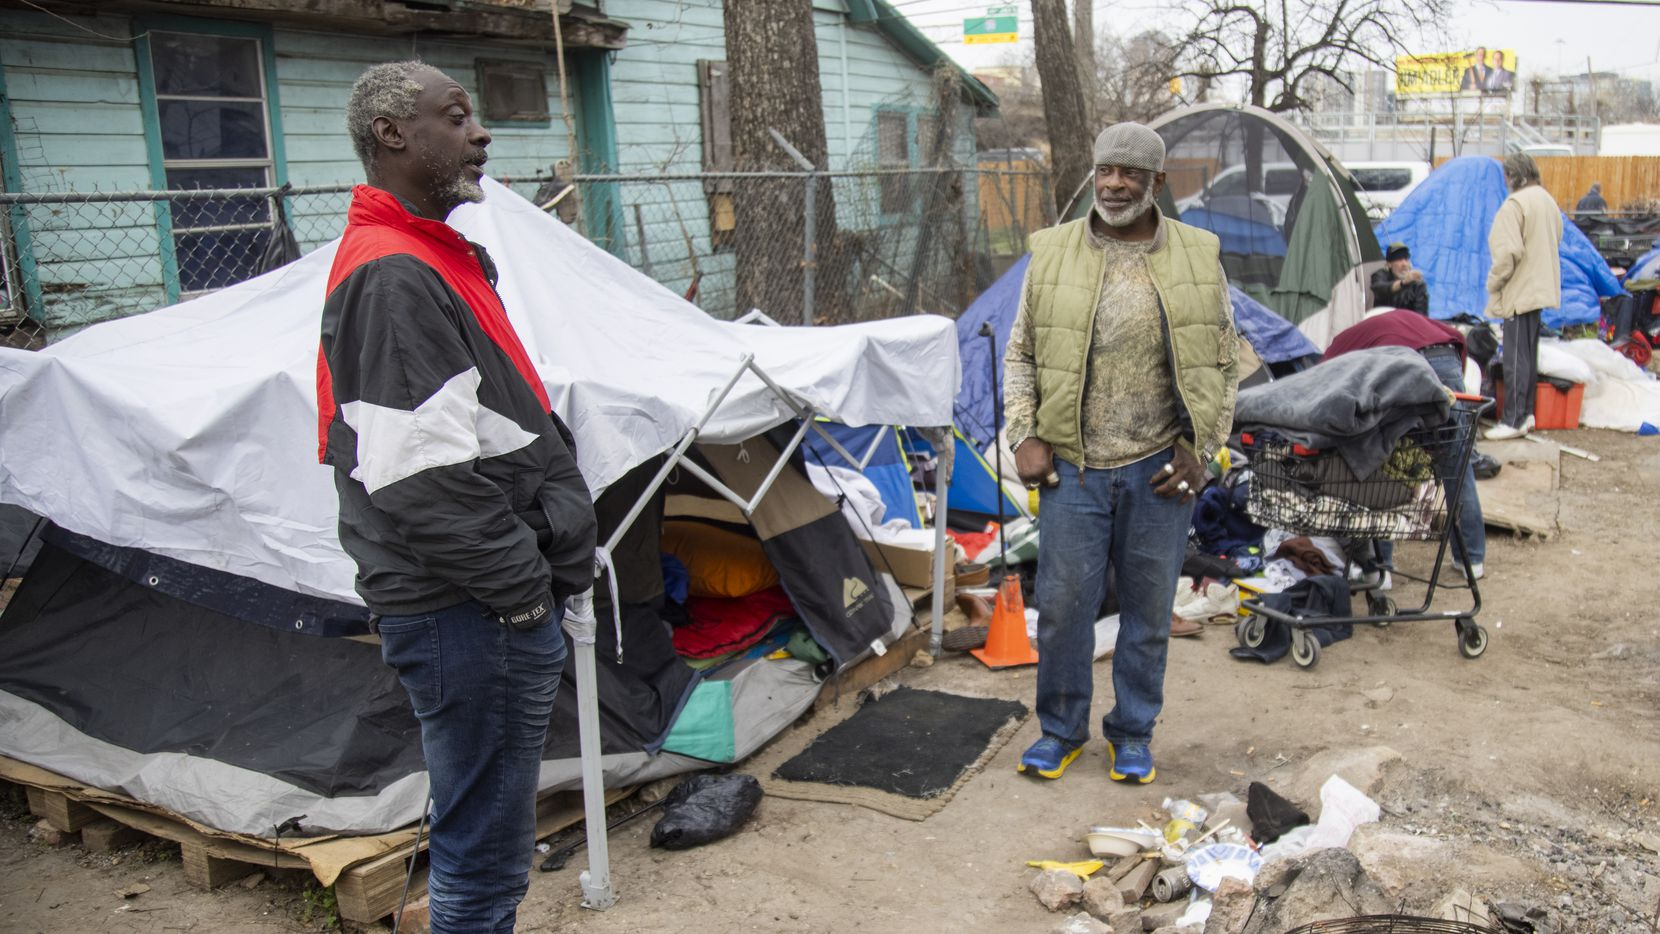 Melvin Hunter (left) chats with Andre Collins at Camp Rhonda, a homeless encampment located on a lot along Interstate 45, on Feb. 5, 2021 in South Dallas. City officials sent a notice to the owner of the property, Johnny Aguinaga, that the lot needed to be empty by Feb. 6.